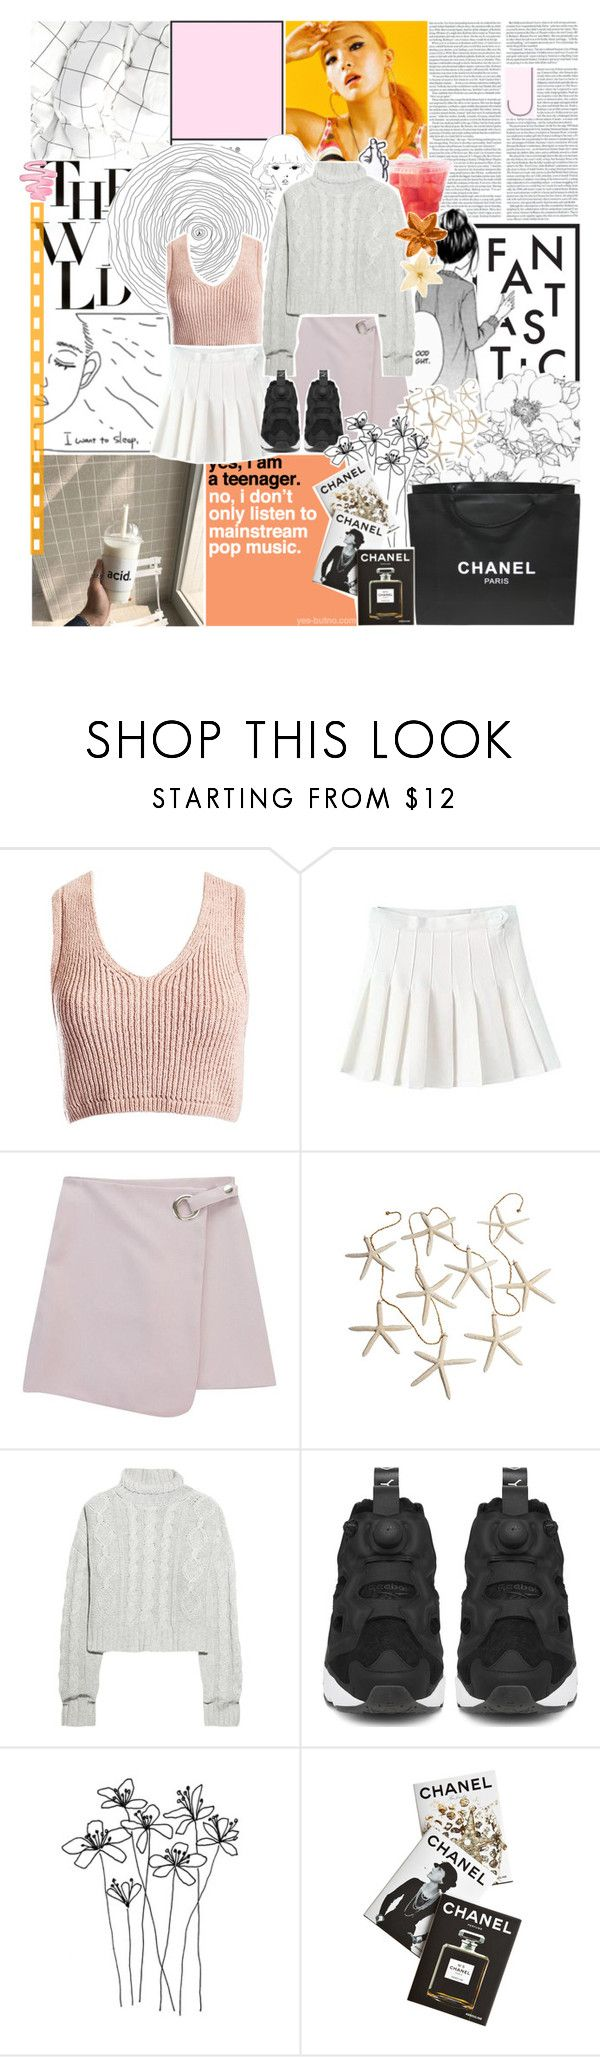 """°○·☆; seulgi as blossom"" by pearliemoon ❤ liked on Polyvore featuring PAM, Sans Souci, Prada, Chanel, Chicnova Fashion, Bamford, Reebok and Assouline Publishing"